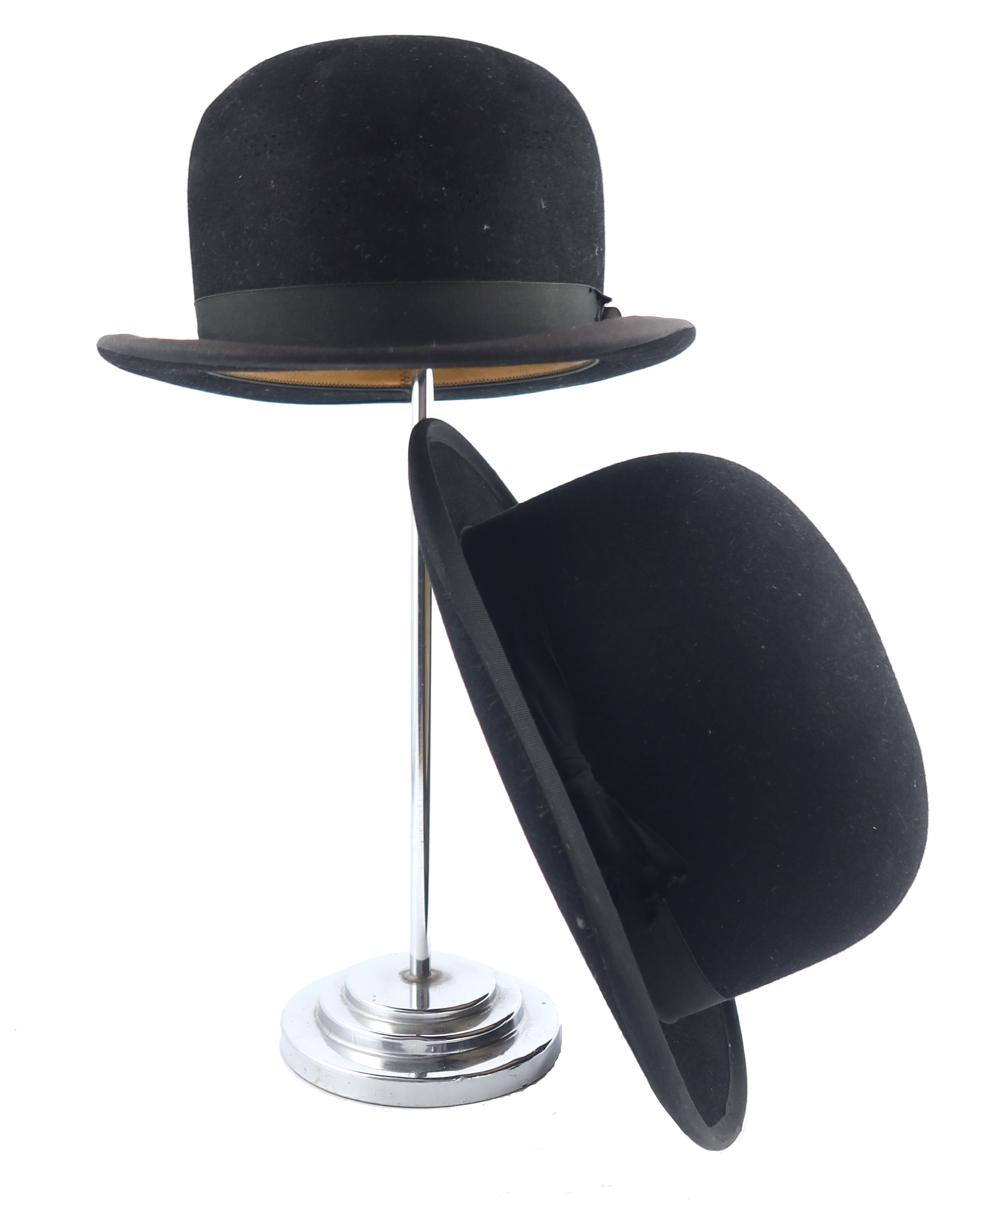 Two bowler hats, one a substantial weigh